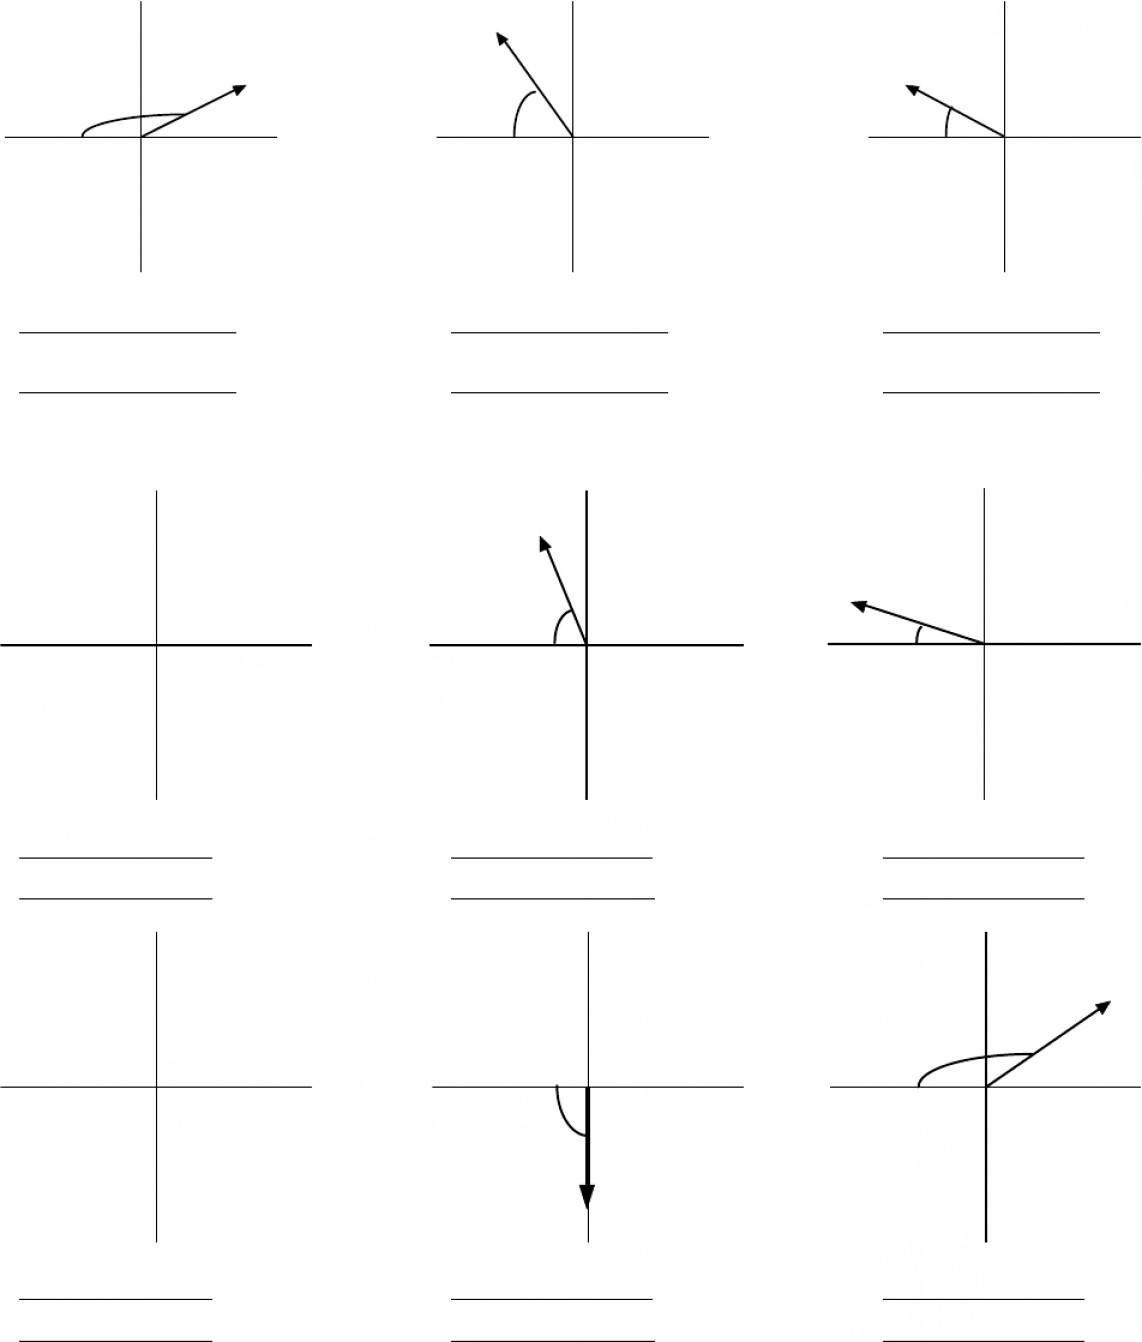 Adding Vector Components By: Vector Components And Addition Worksheet I Vector Addition Worksheet I Date